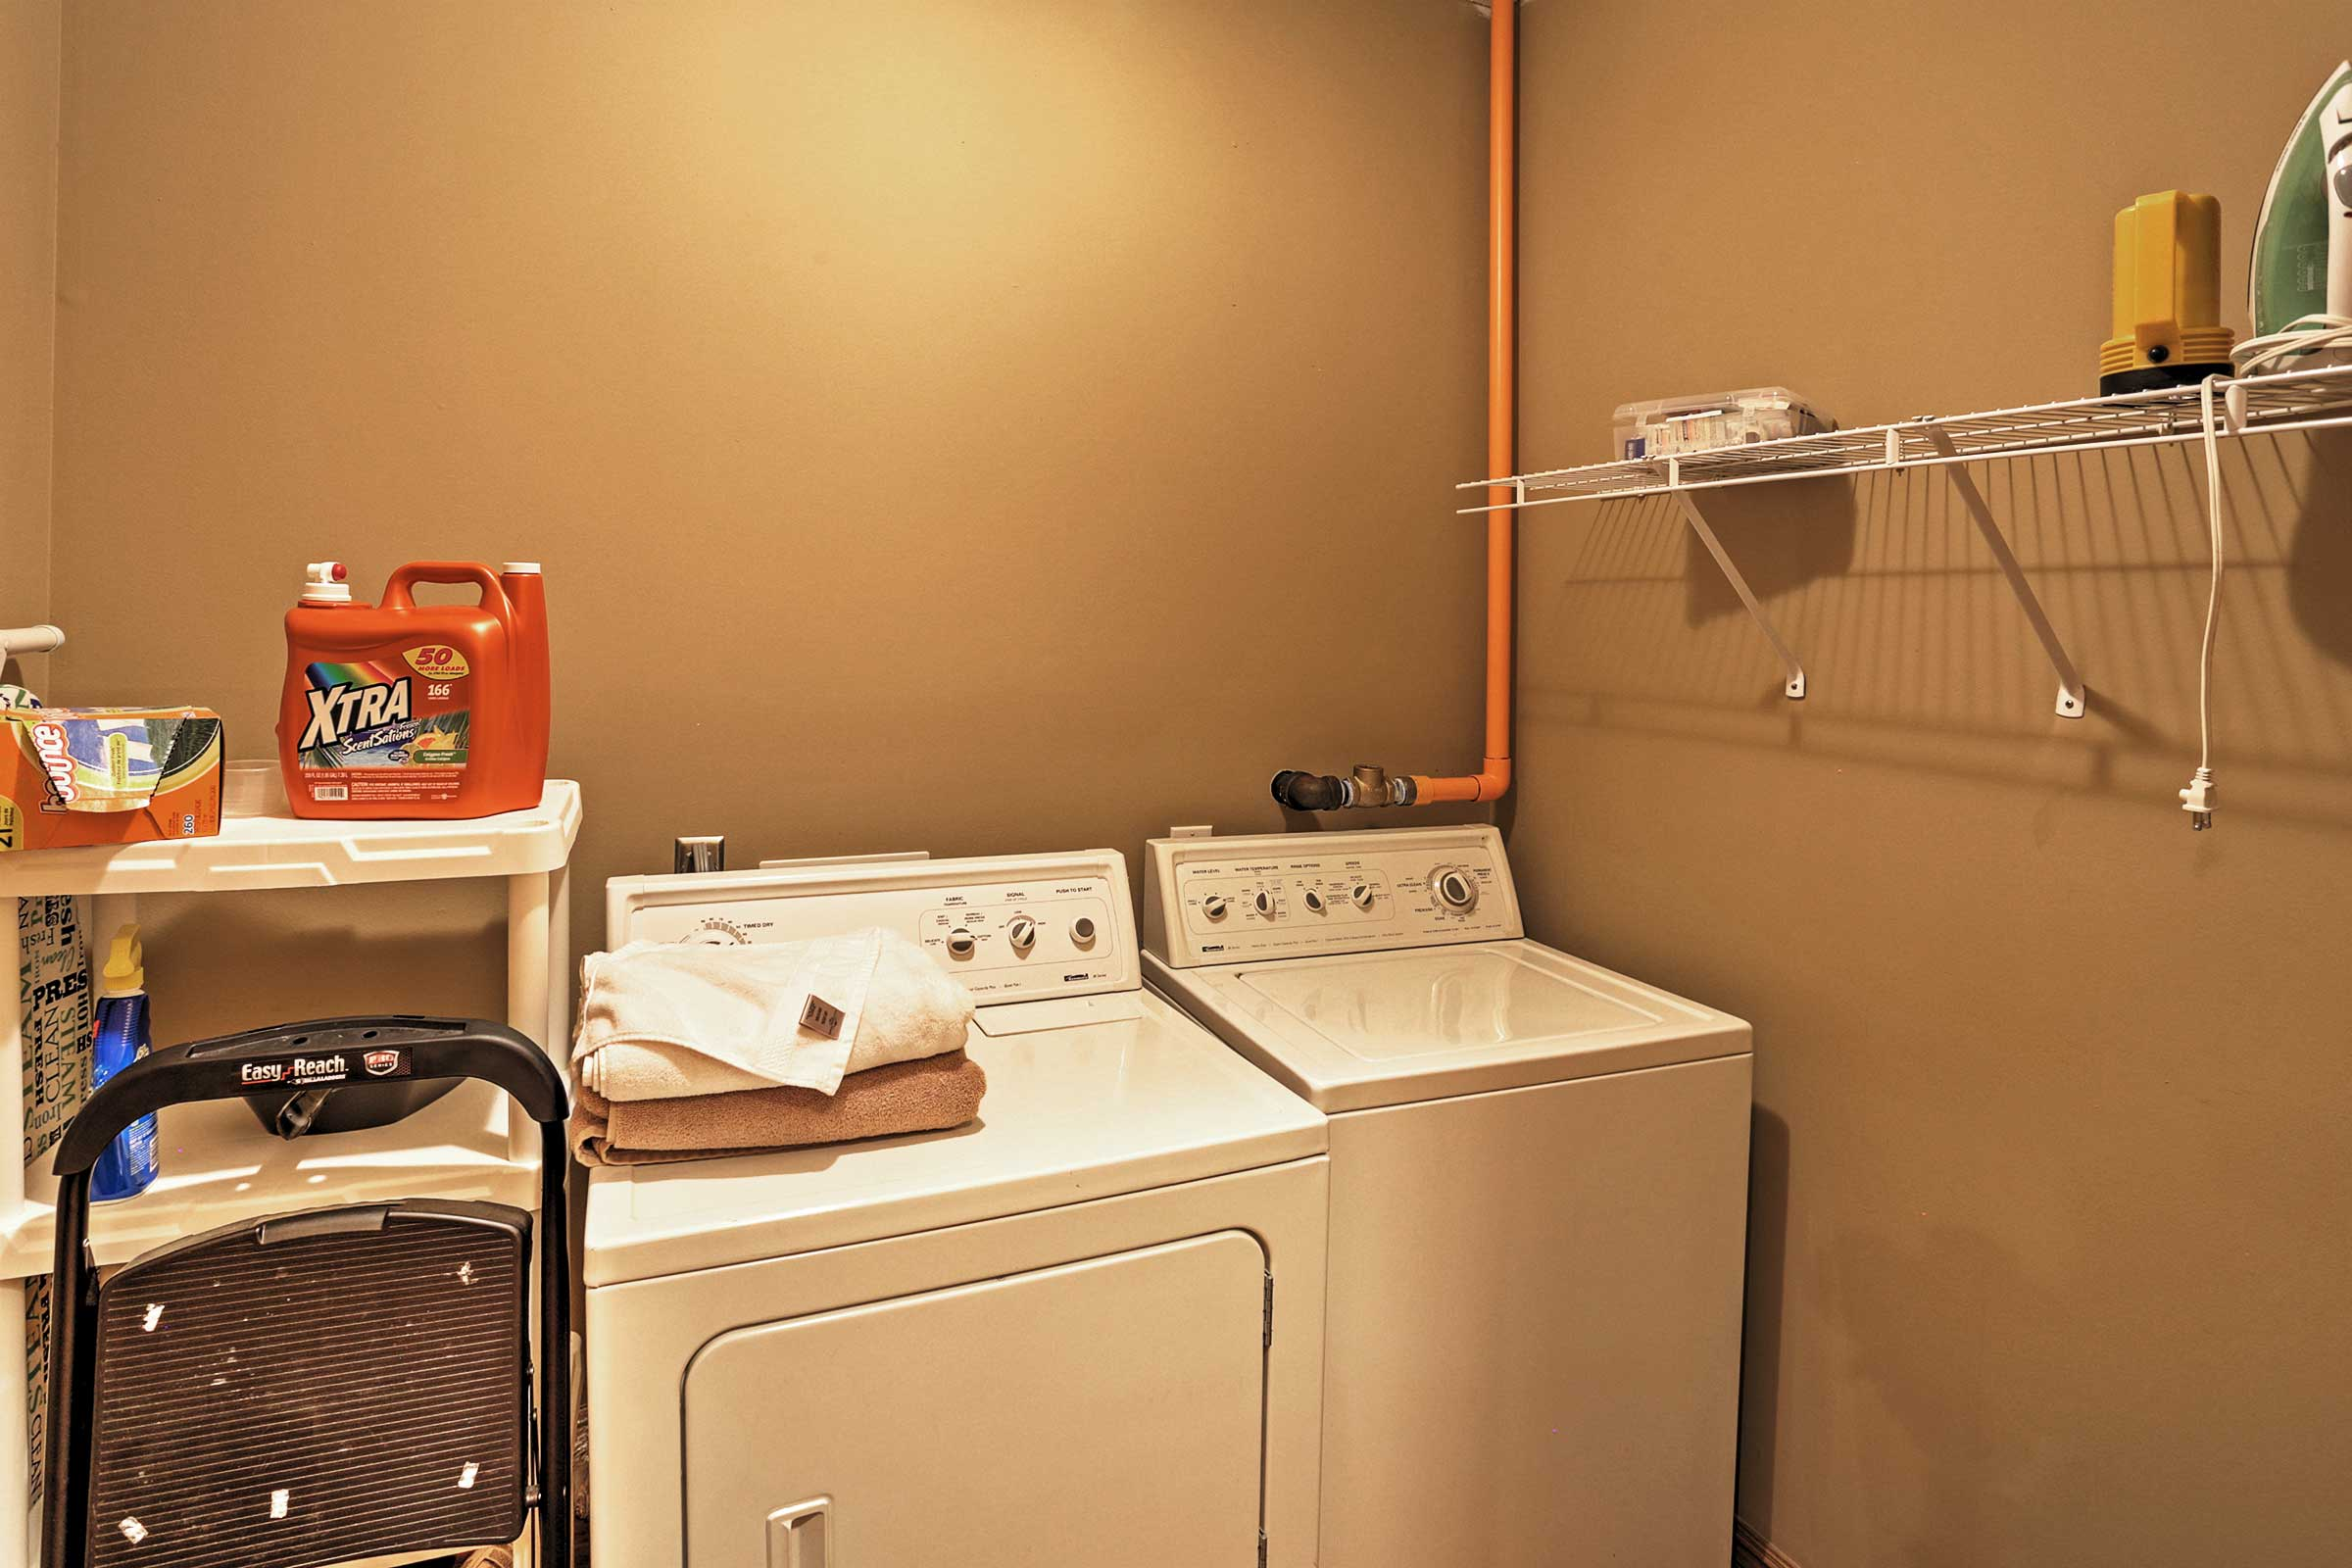 Laundry Room | Laundry Detergent Provided